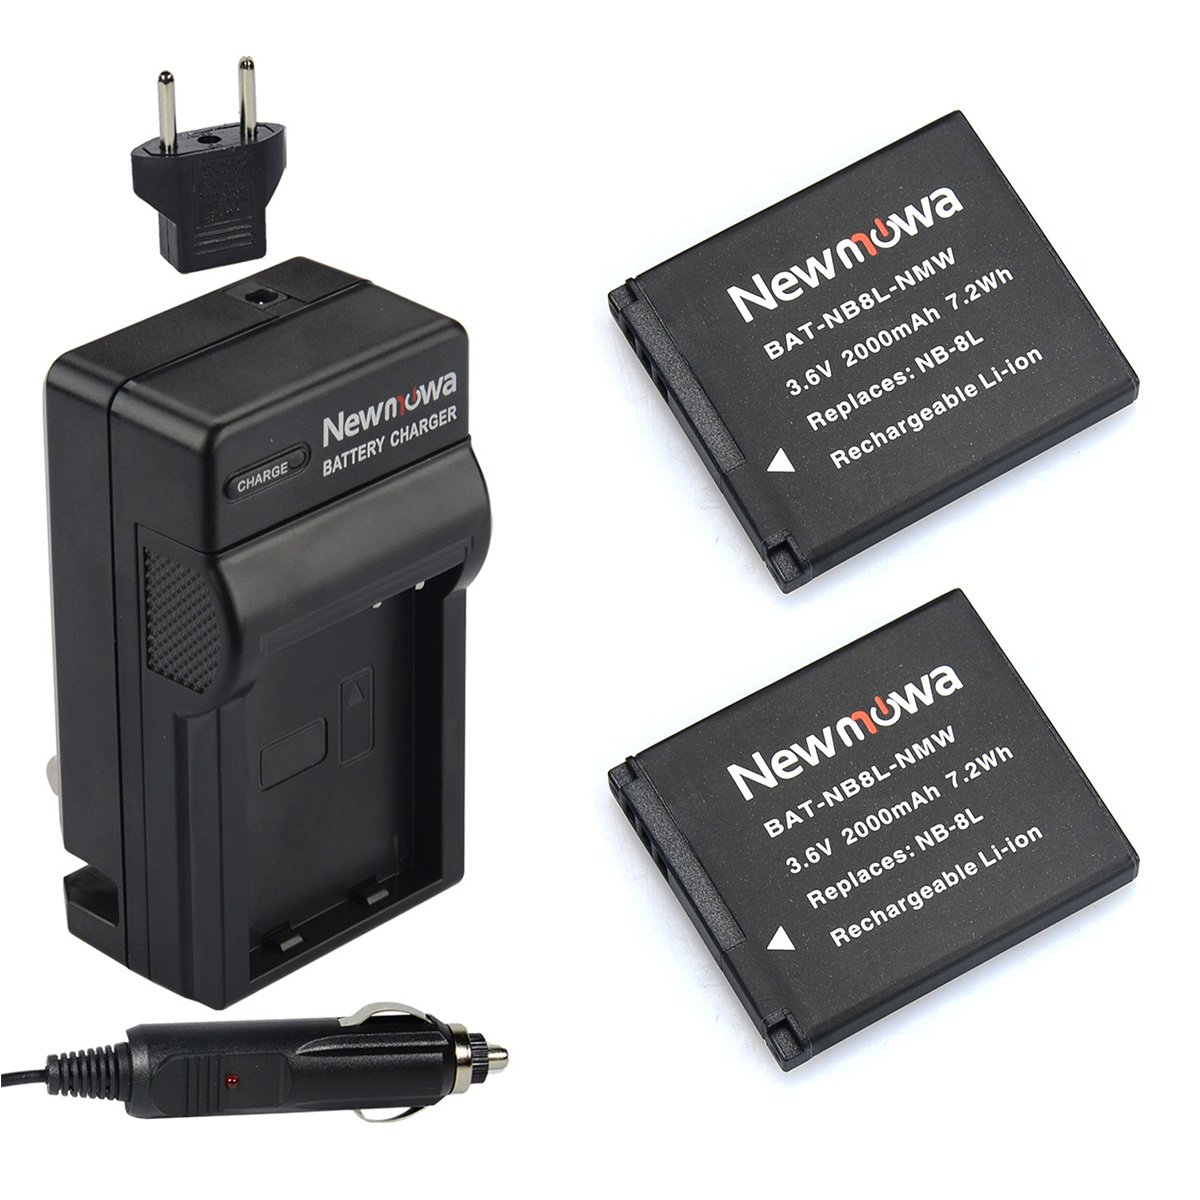 Newmowa NB-8L Battery (2-Pack) and Charger kit for Canon NB-8L,CB-2LA and Canon PowerShot A2200, A3000 IS, A3100 IS, A3200 IS, A3300 IS by Newmowa